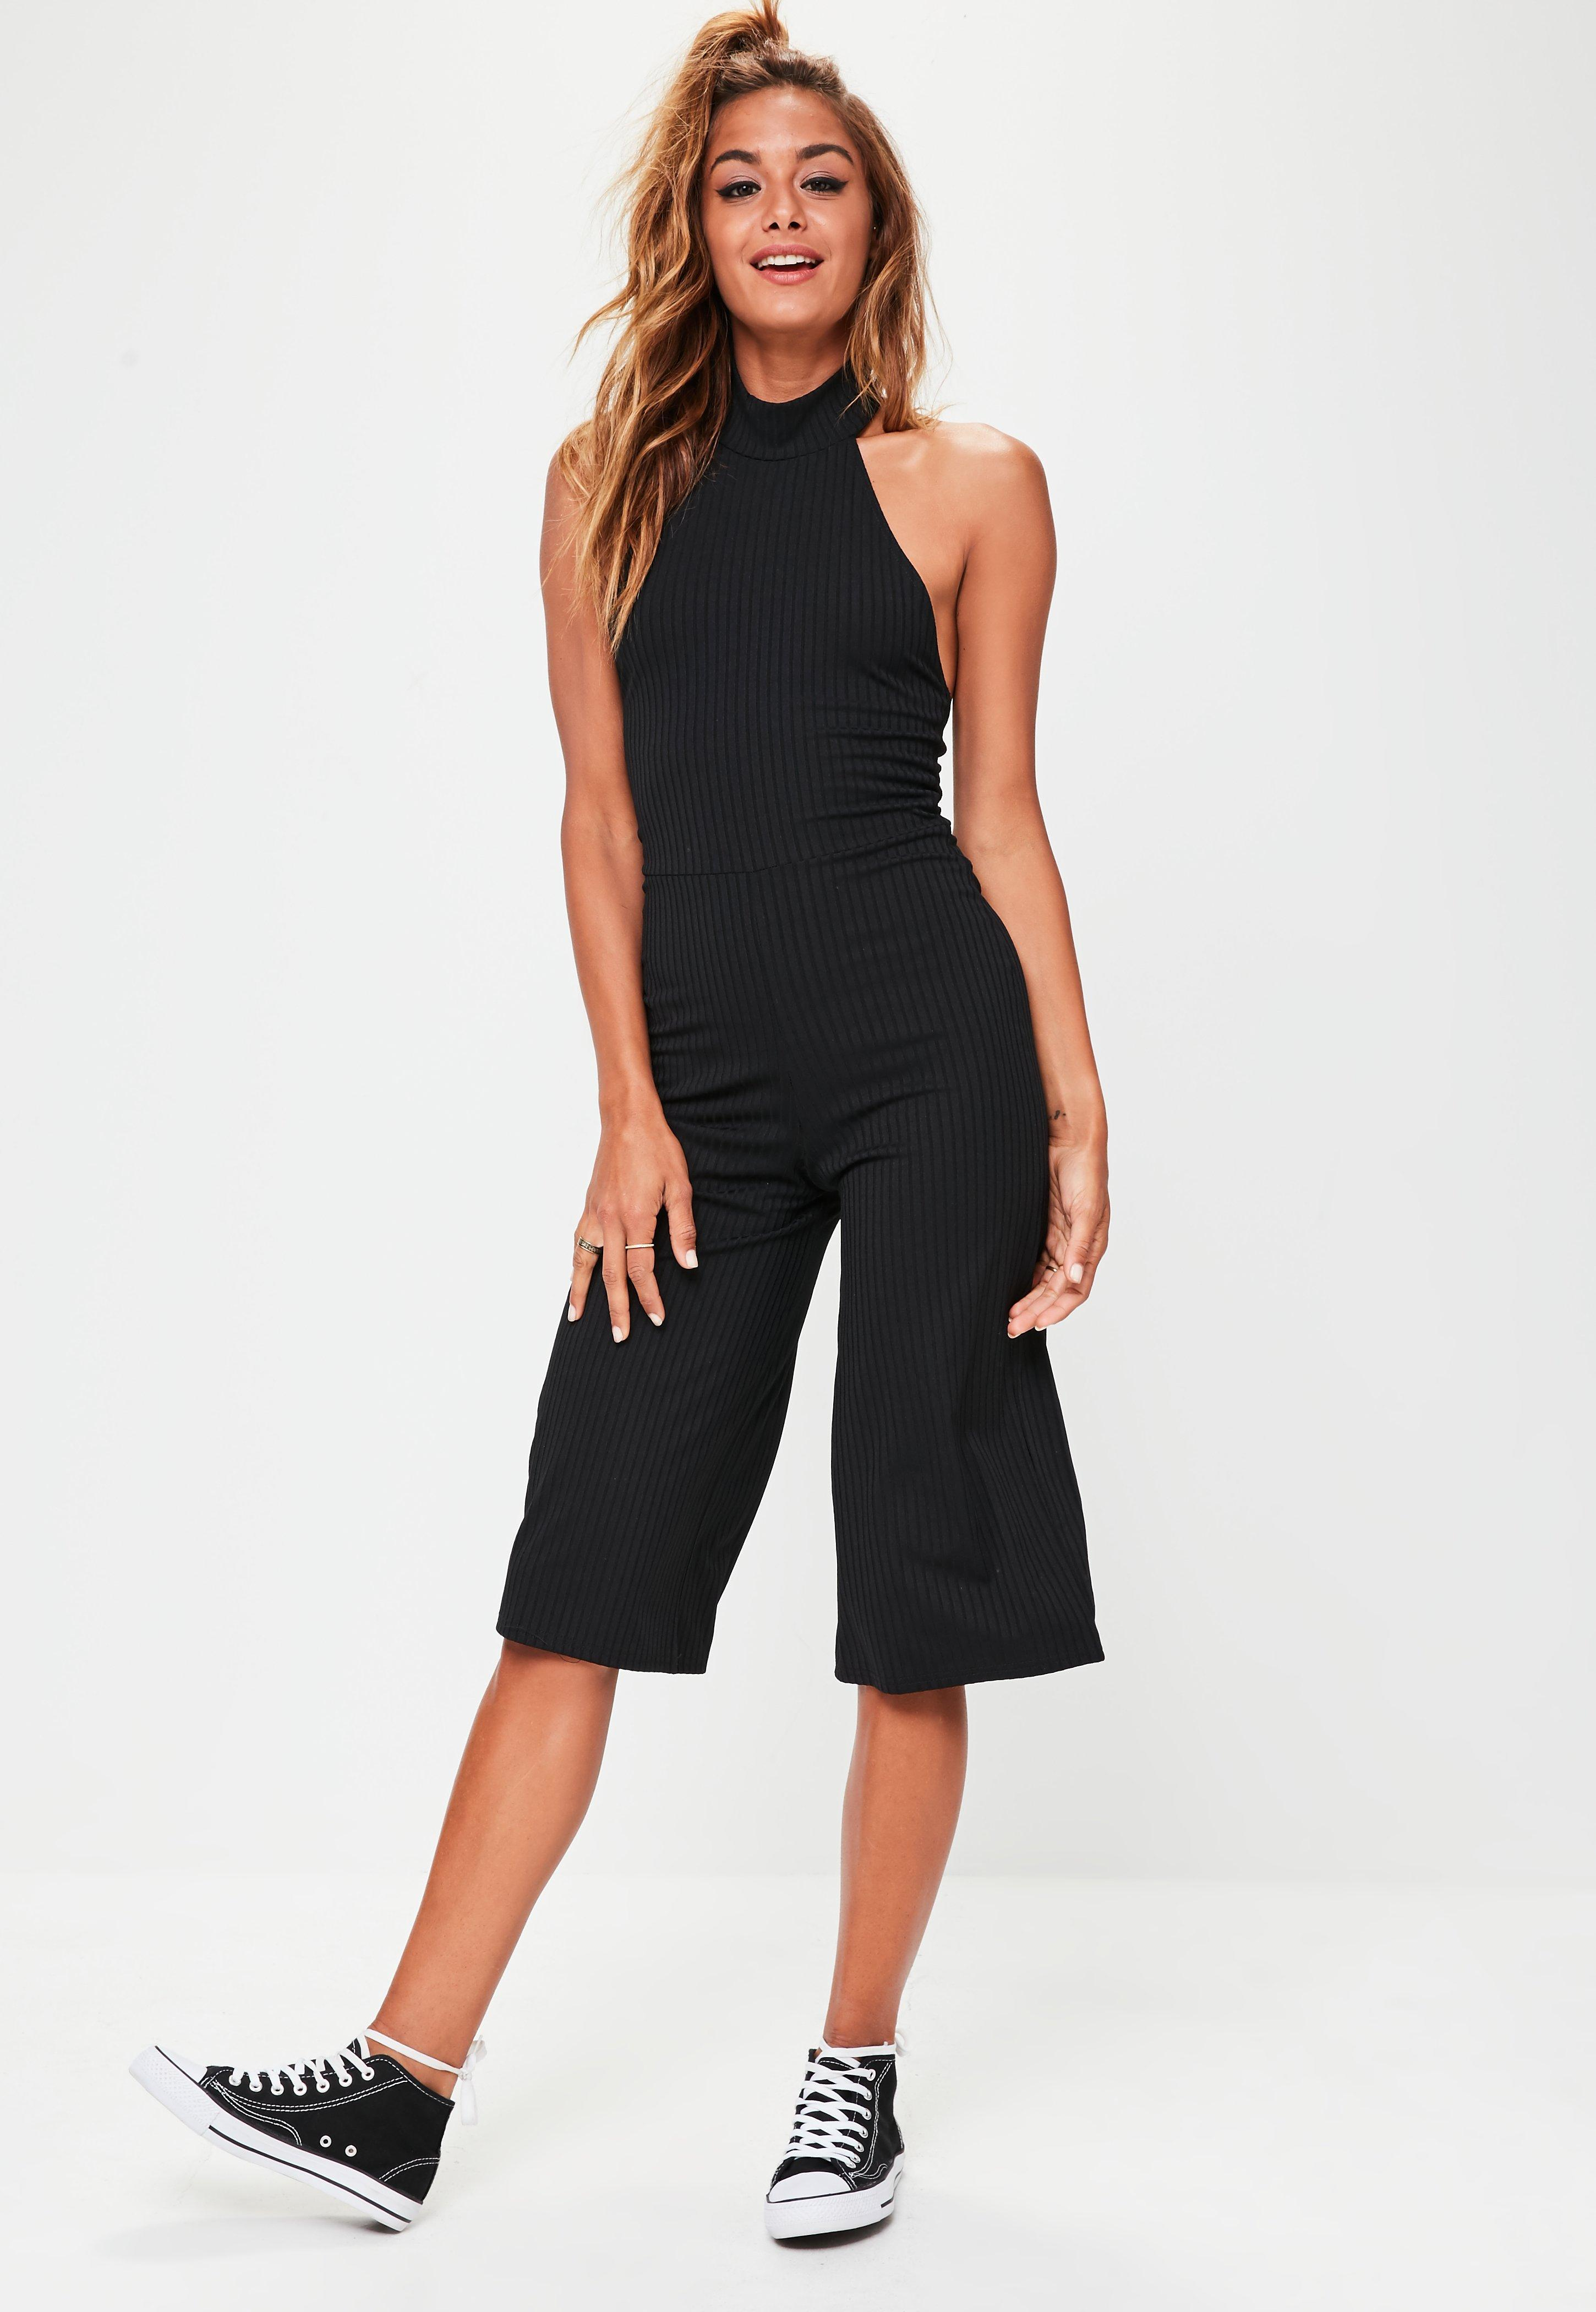 6d61dca7f7b4 Missguided Black High Neck Ribbed Culotte Jumpsuit in Black - Lyst